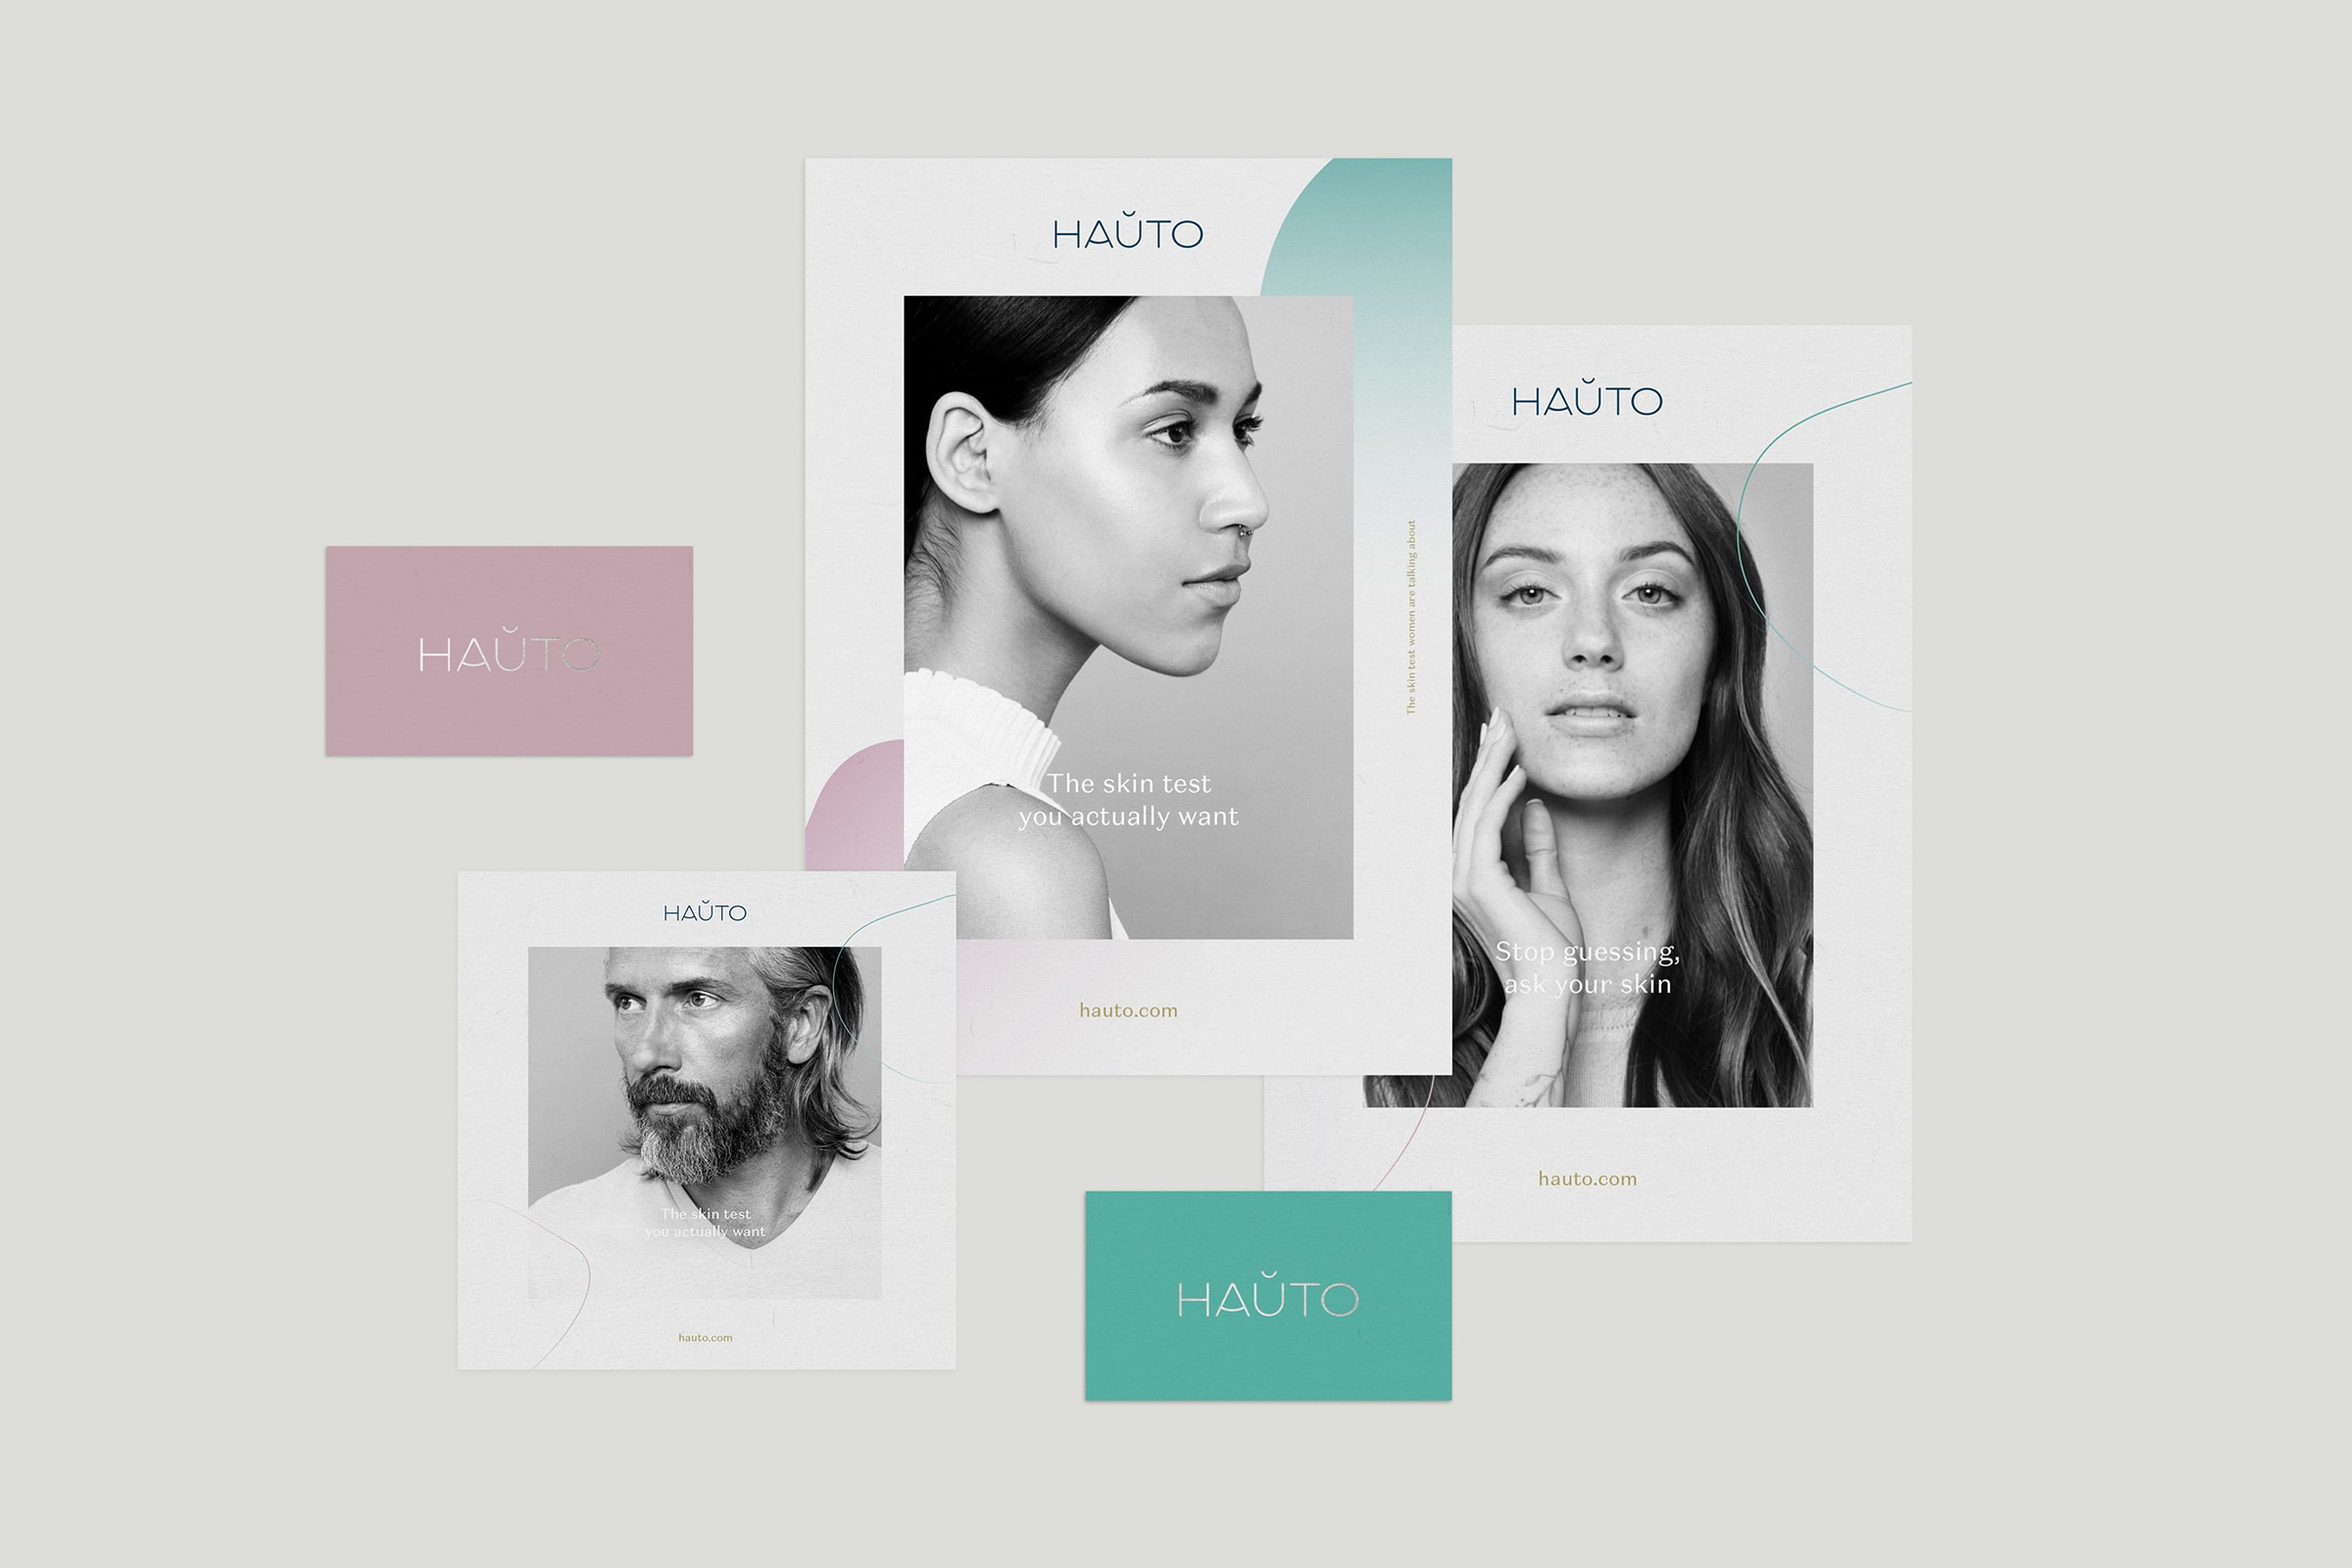 hauto-stationery-mockup